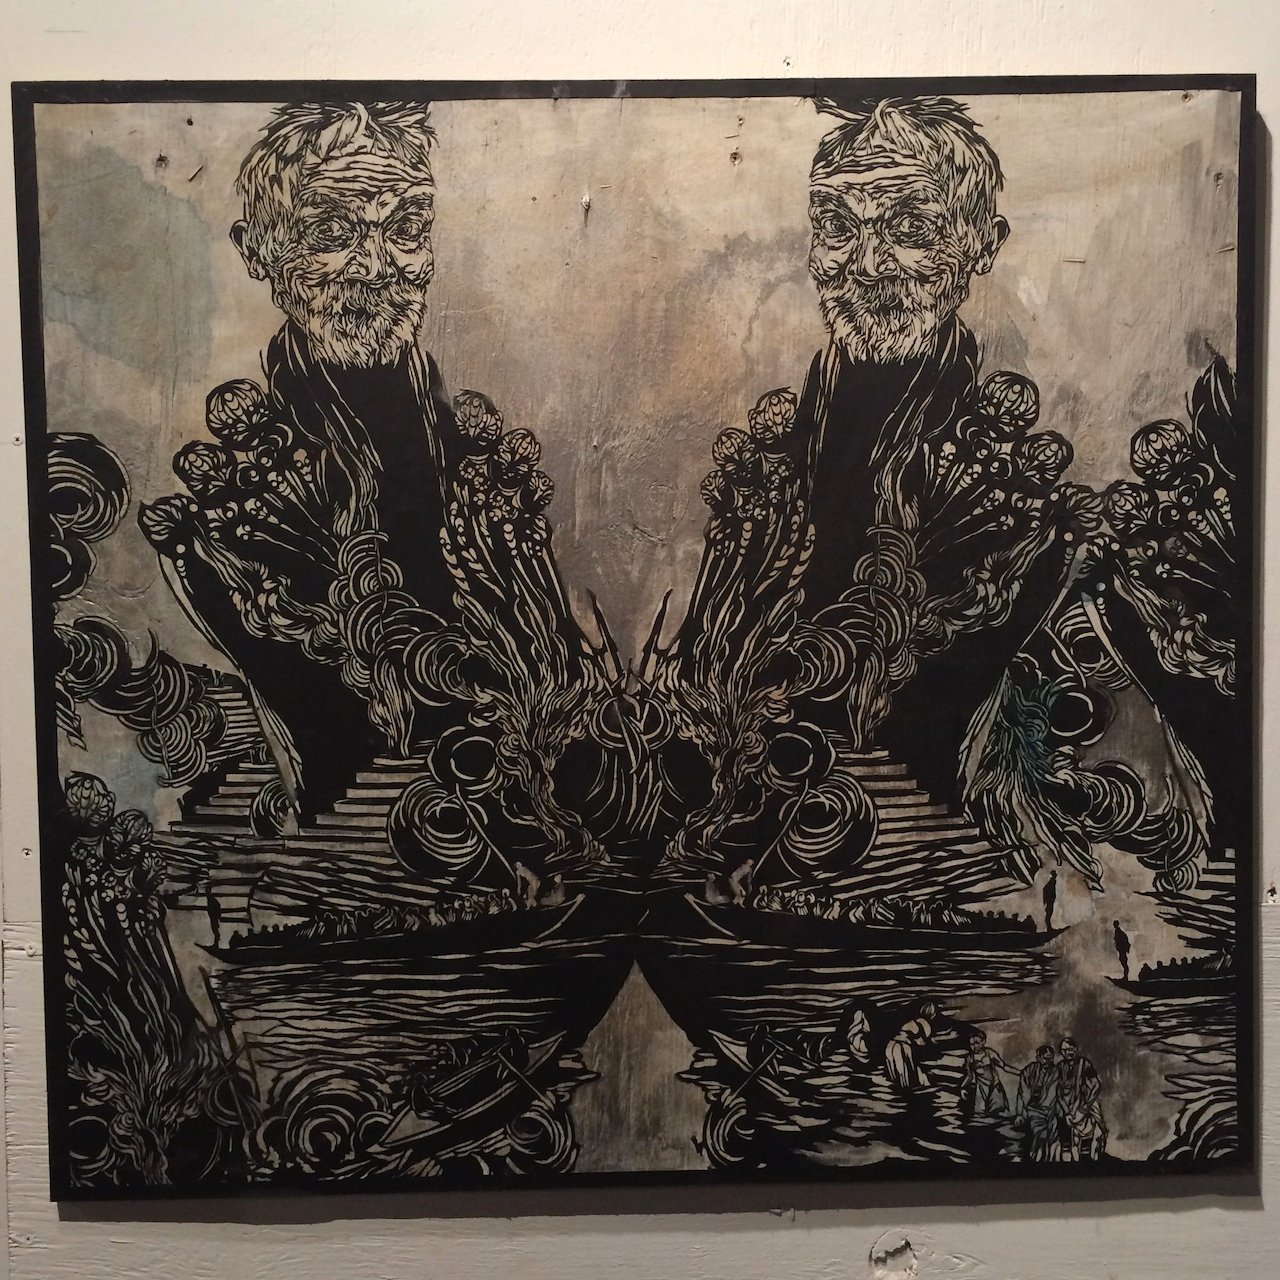 Work by Swoon in a pop-up exhibition at 610 Smith Street